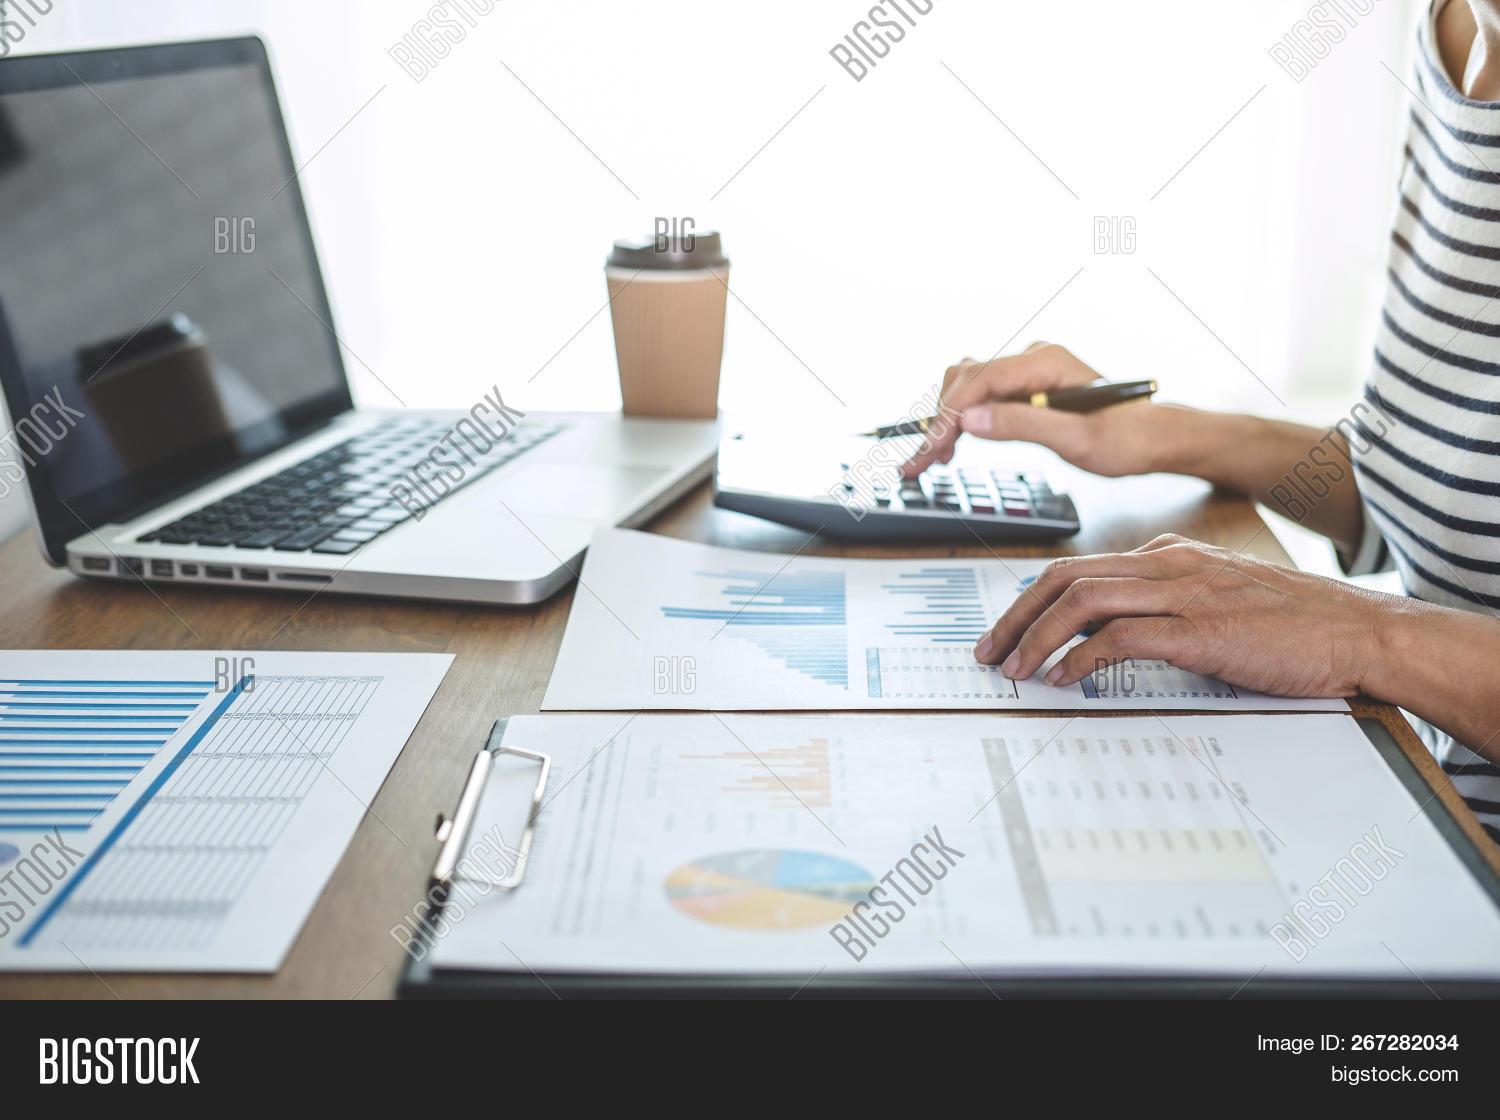 account,accountant,accounting,administration,analysis,audit,balance,bank,budget,business,businessman,calculating,calculator,chart,commerce,computer,concept,consulting,data,development,document,economy,finance,financial,hand,income,investment,laptop,man,management,marketing,multitasking,networking,office,online,paperwork,payment,pen,person,report,revenue,savings,statistics,strategy,success,tax,technology,vat,work,working